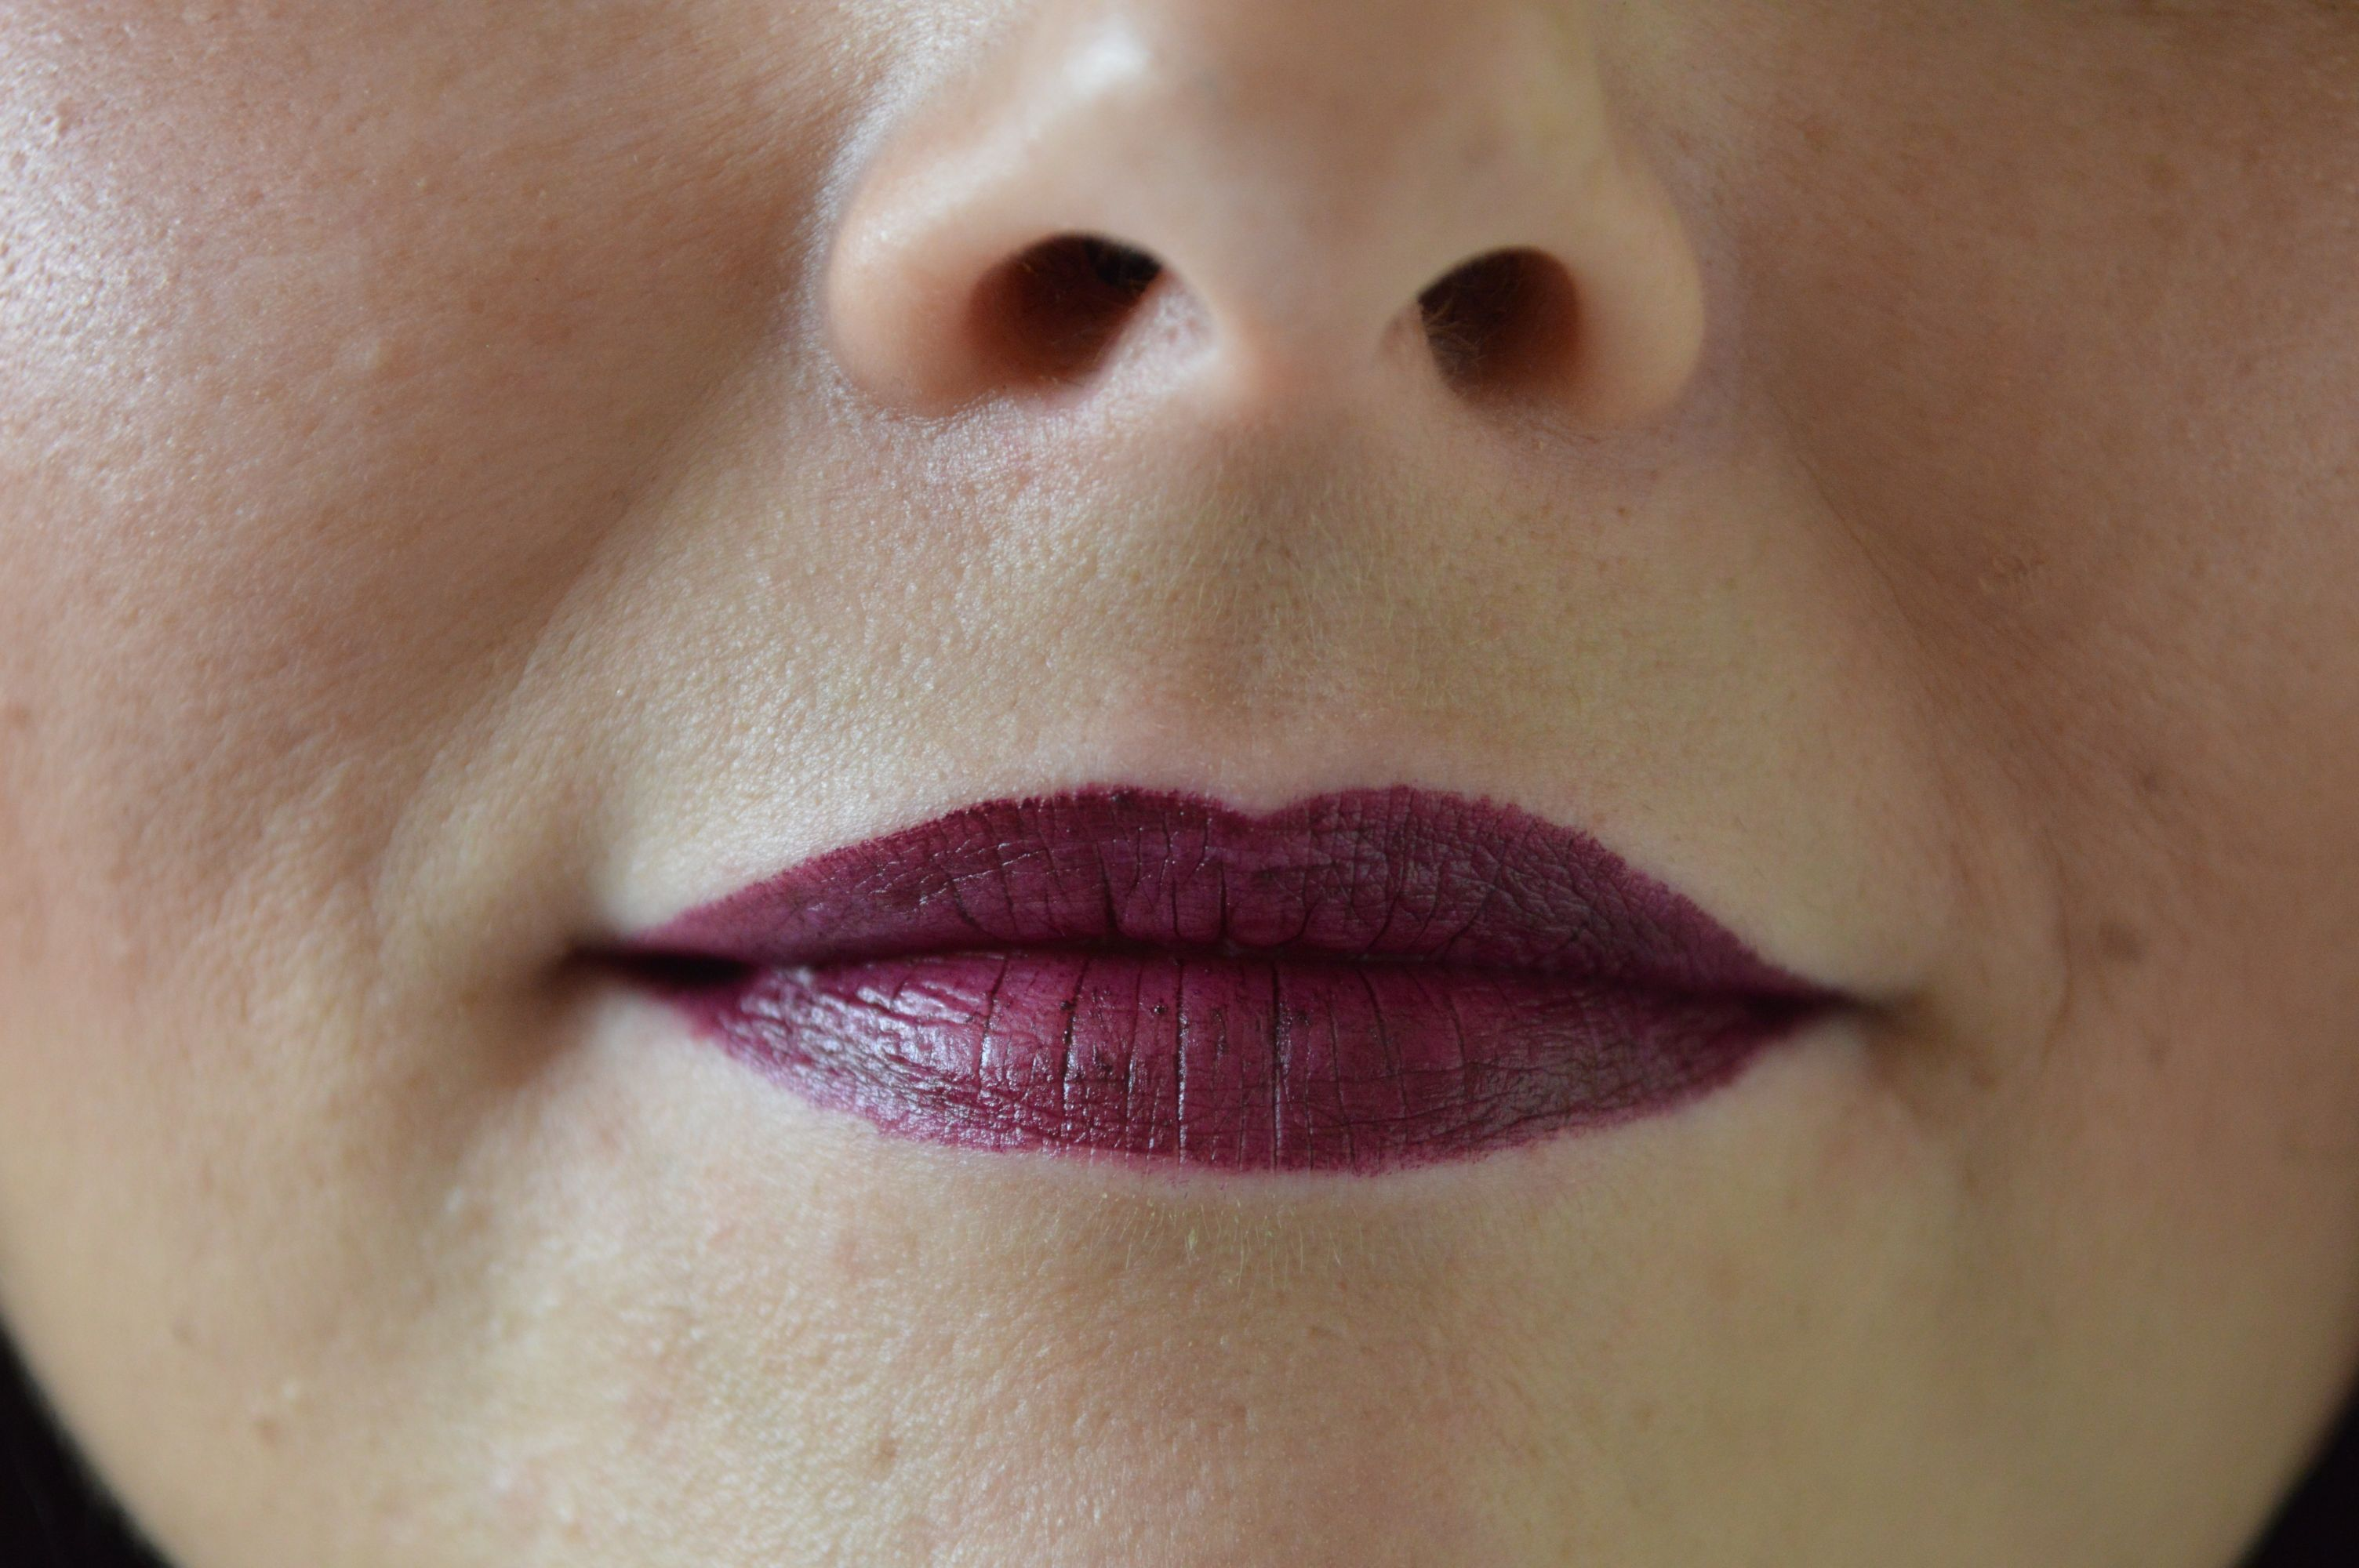 P2 Cosmetics Violet Dream Lippenstift Swatches